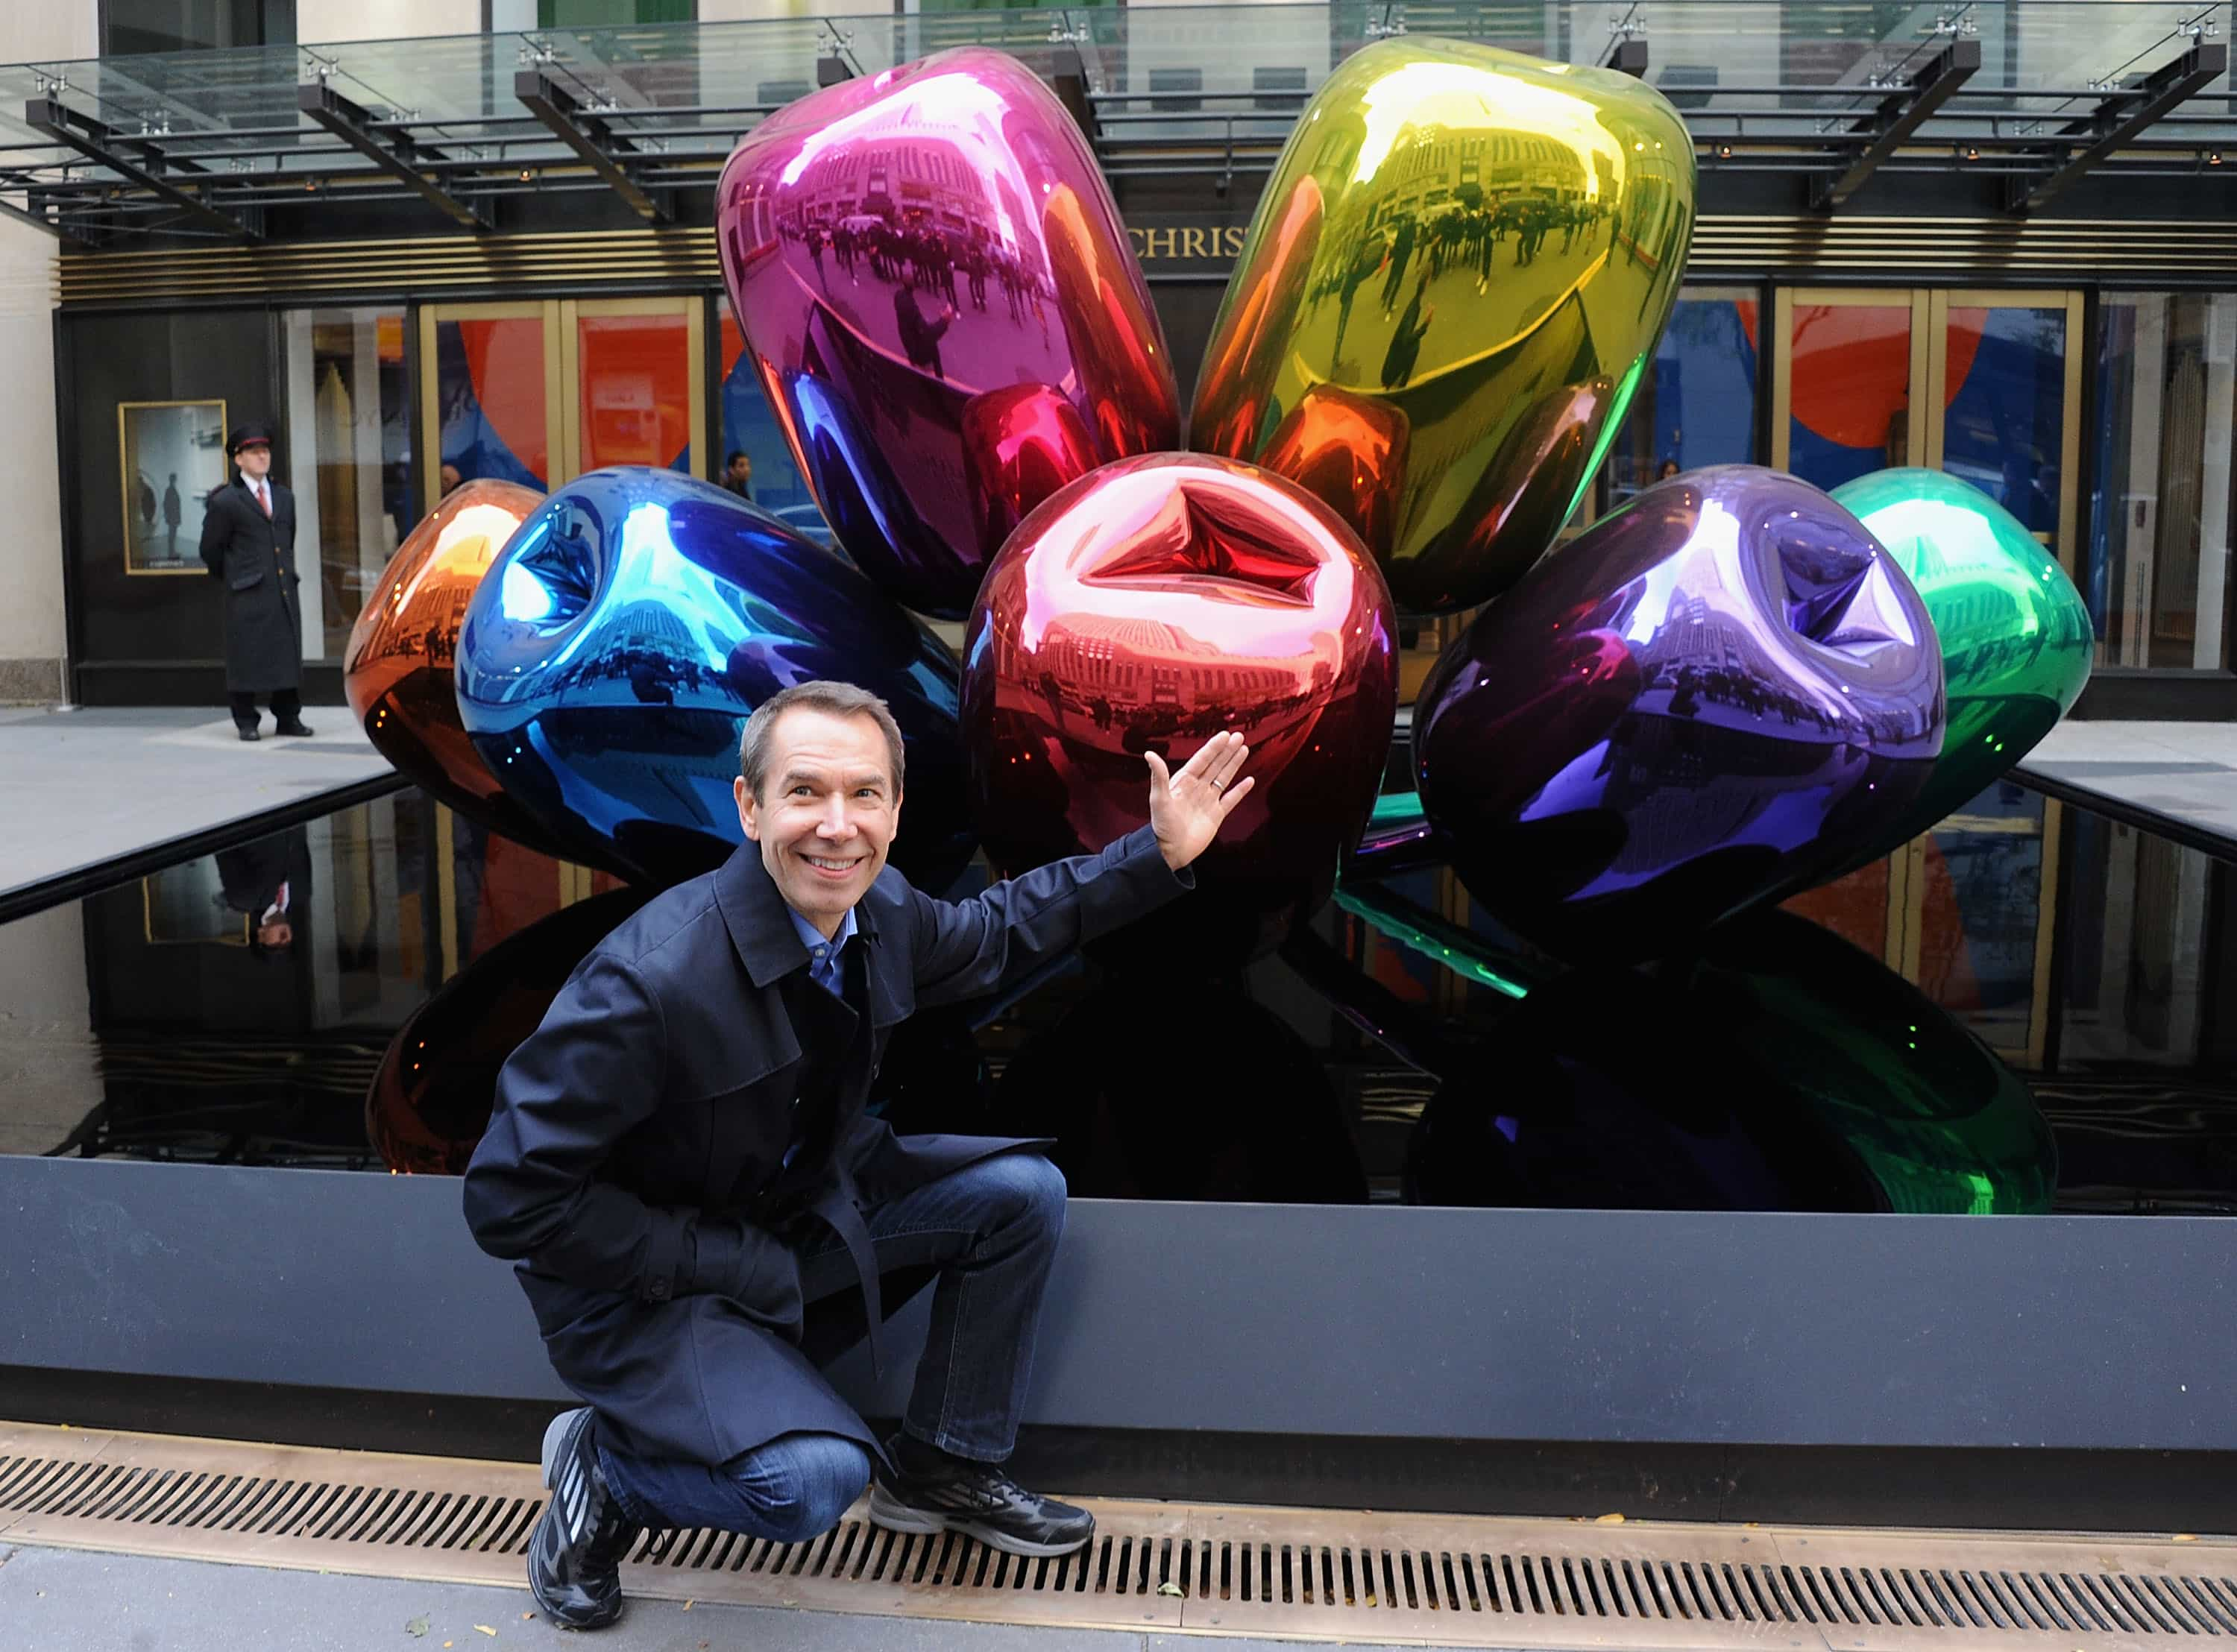 The Bouquet of Tulips by Jeff Koons is arriving at Le Petit Palais